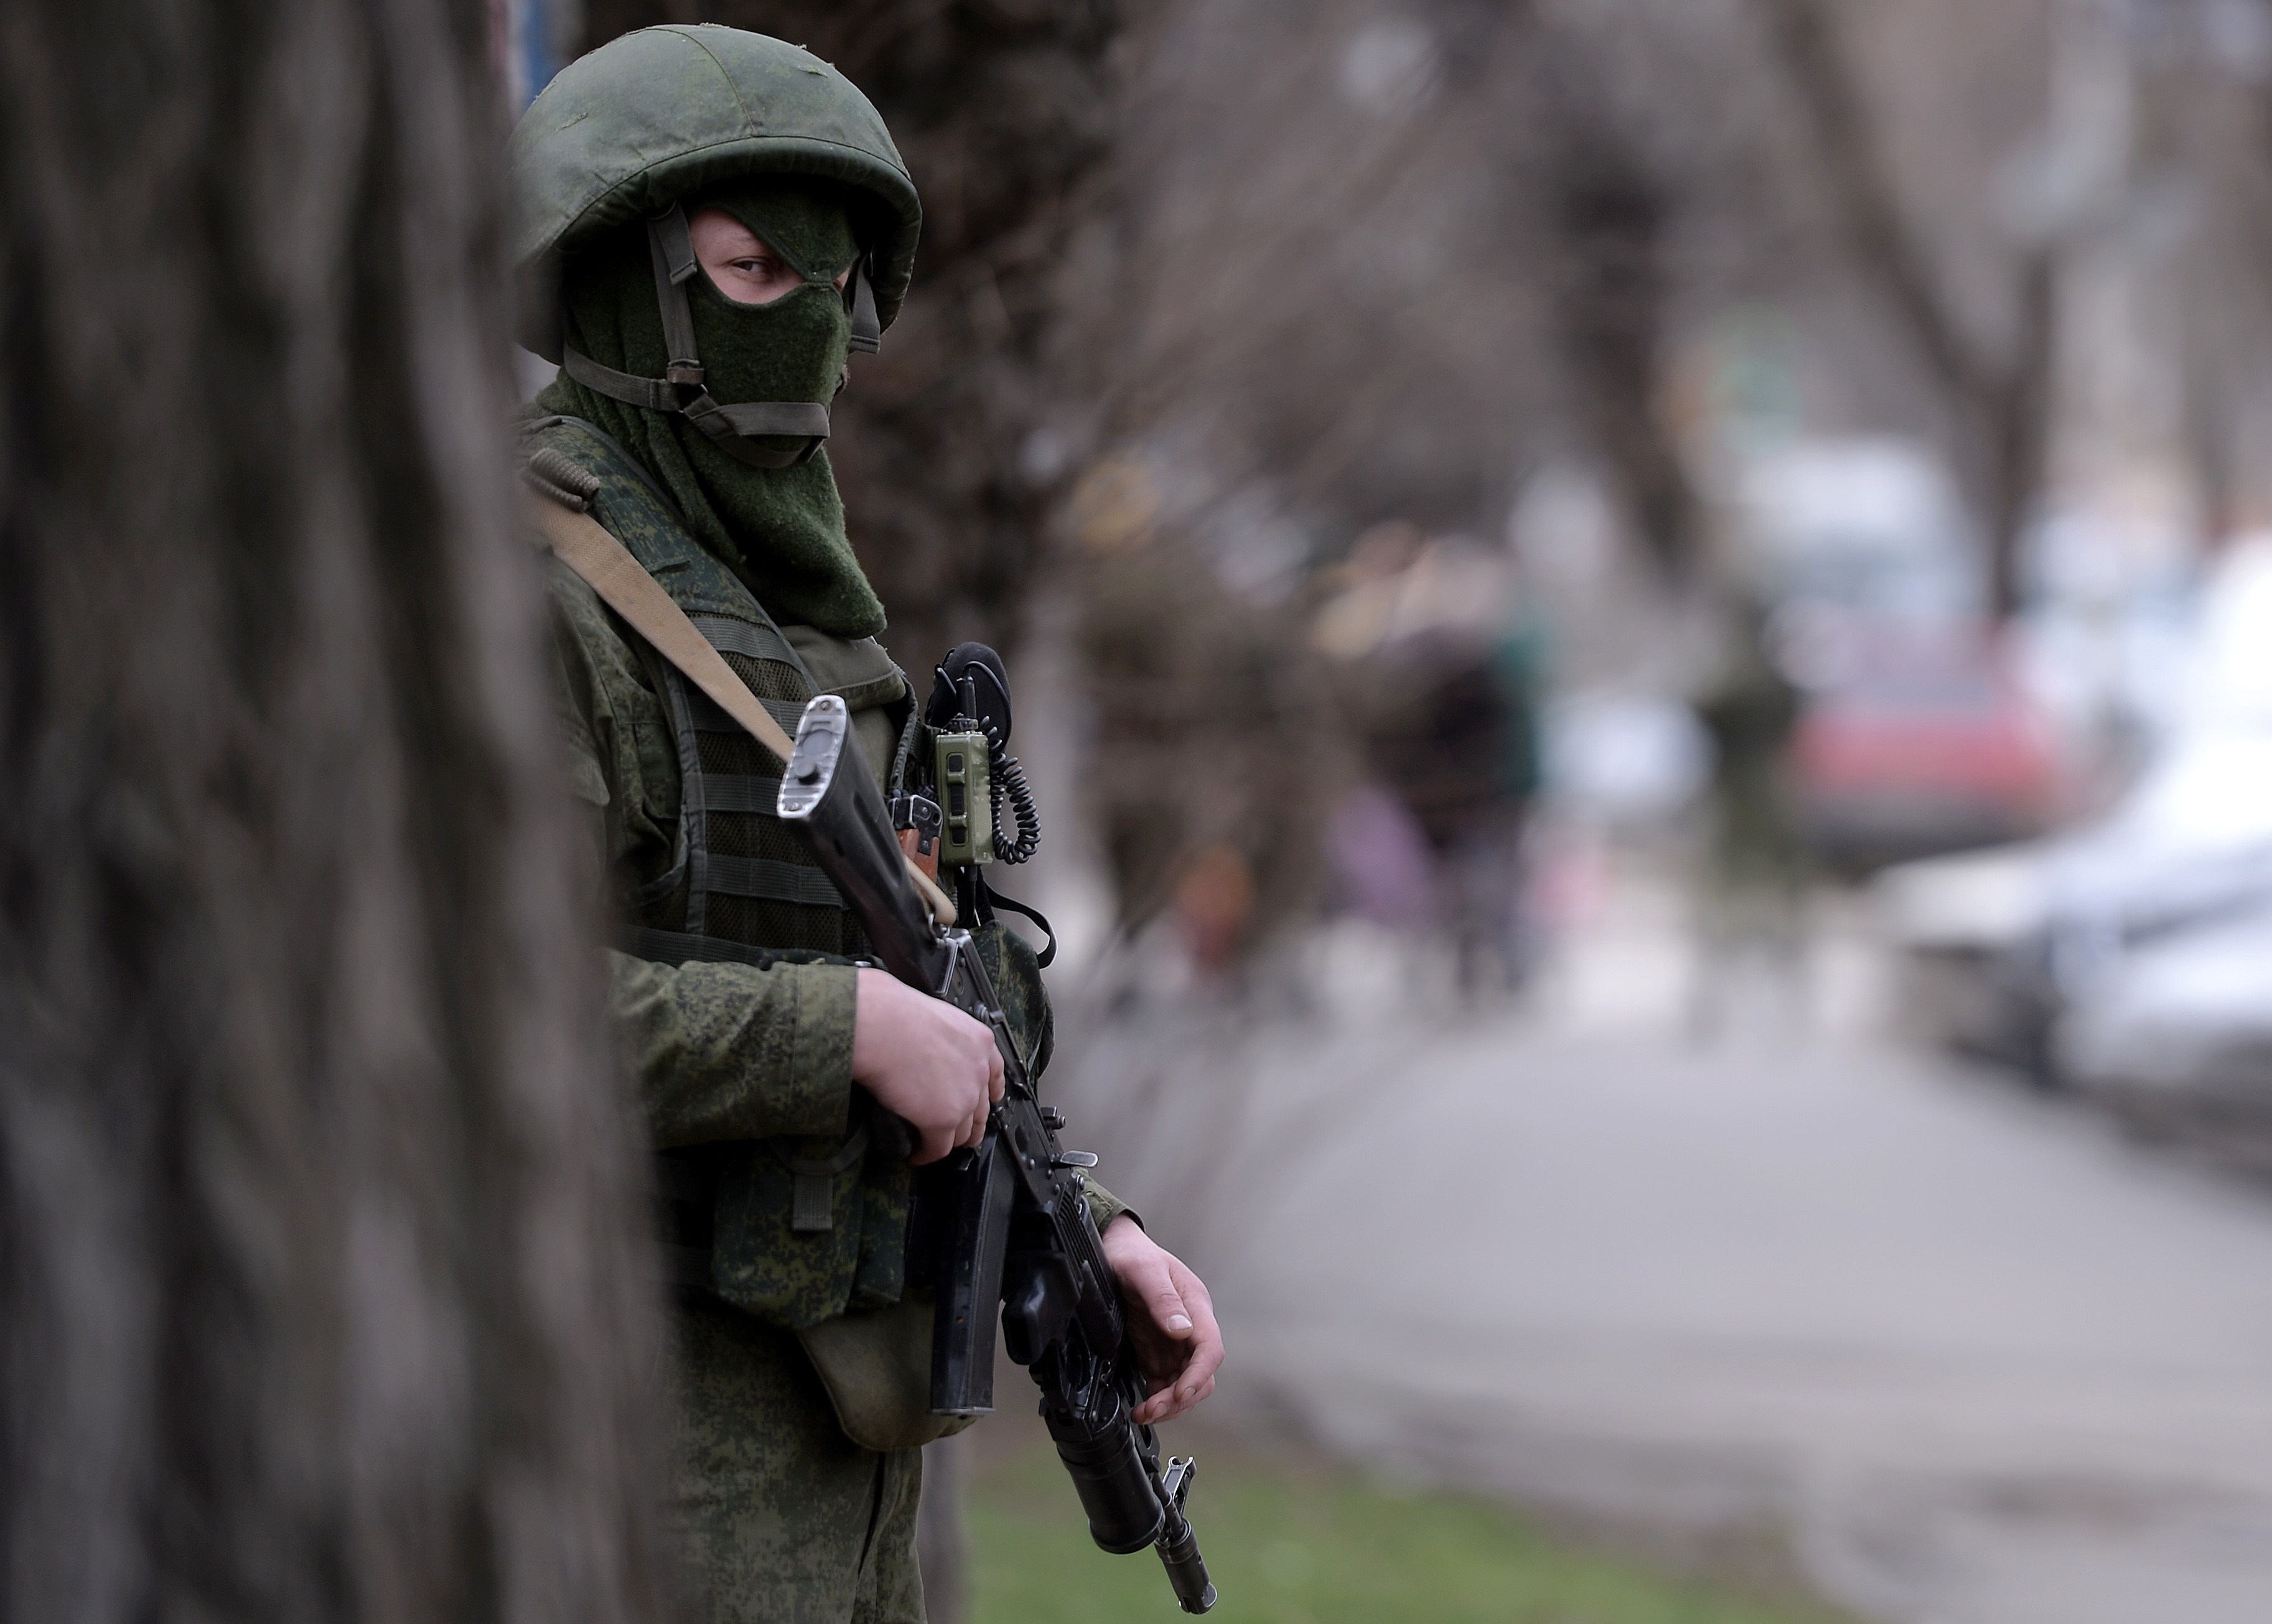 A Russian soldier stands guard outside the navy headquarters in Simferopol, Ukraine on  March 19, 2014.